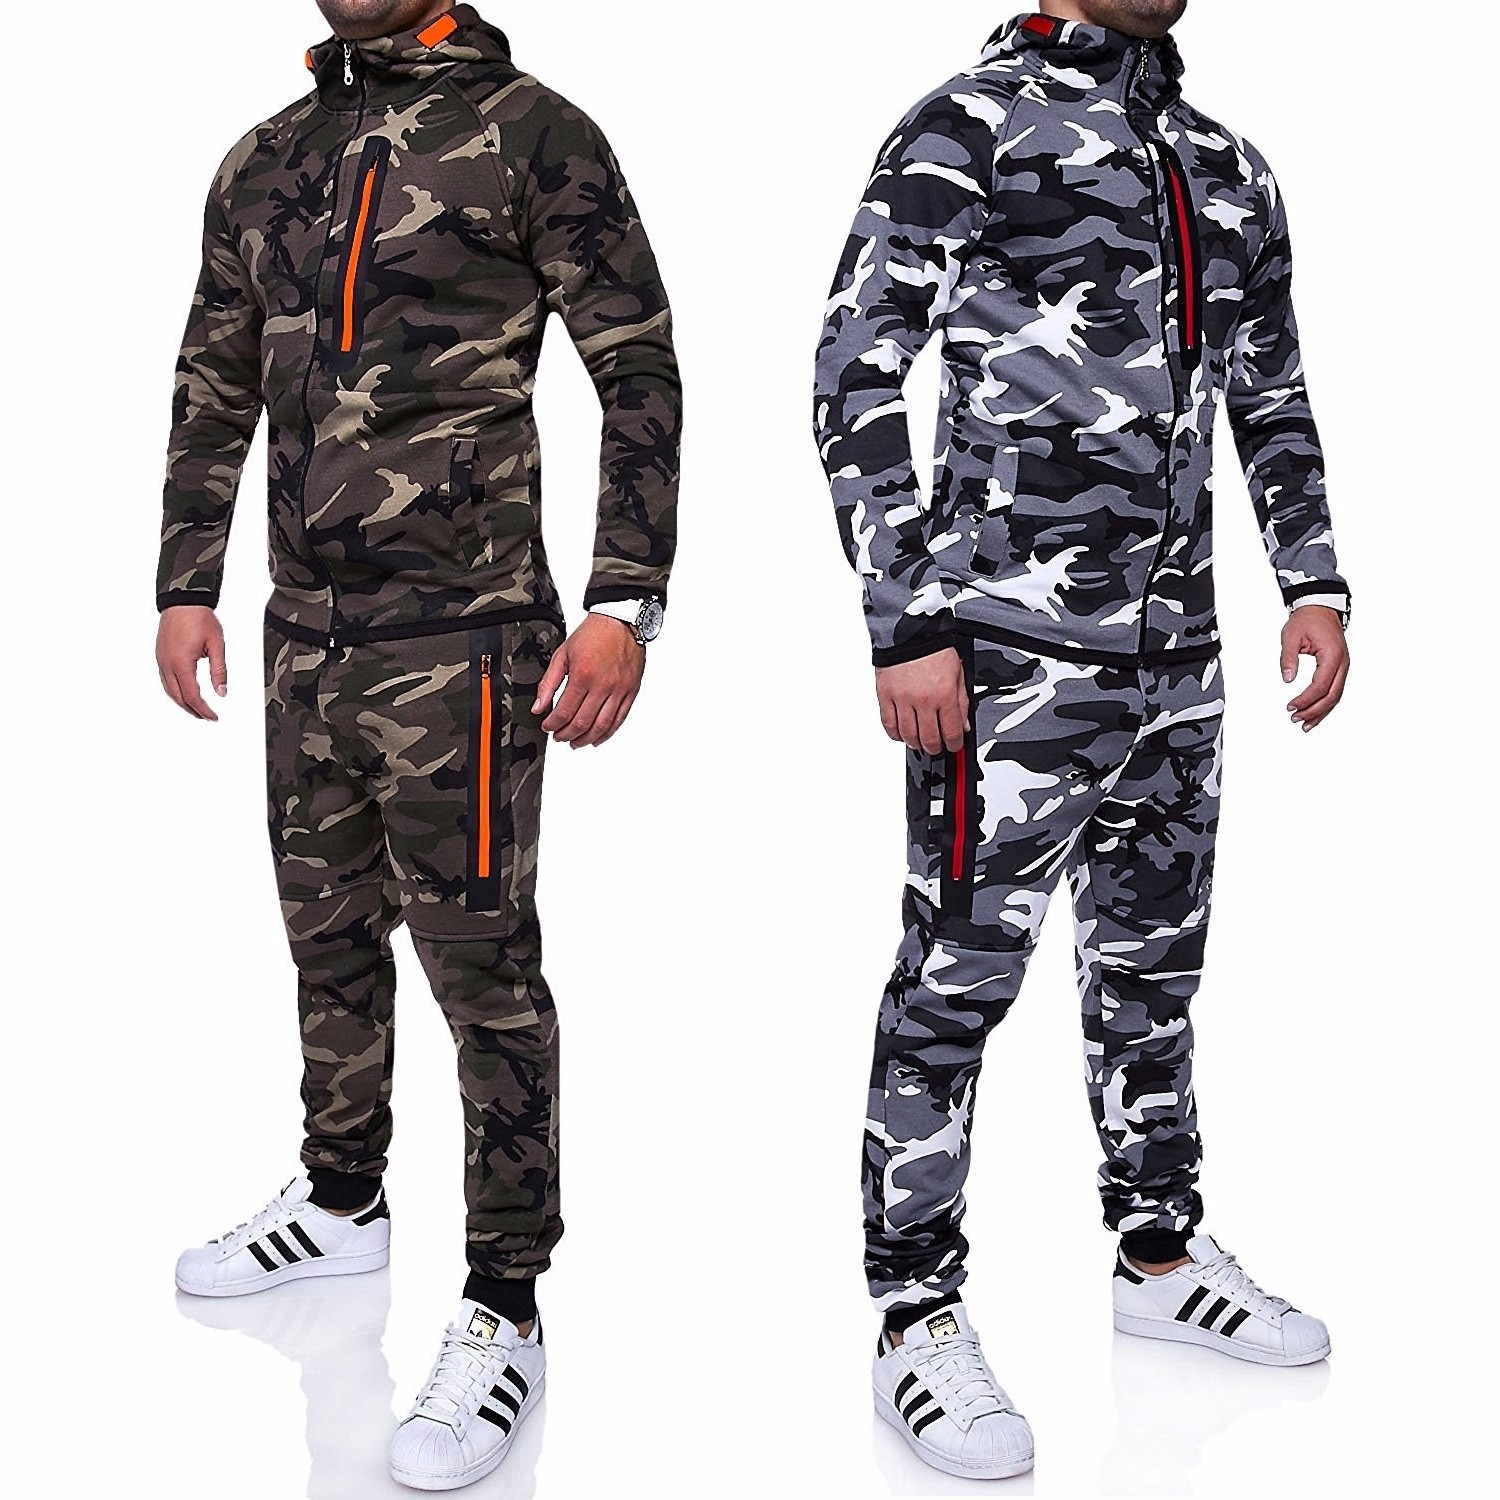 AliExpress Foreign Trade New 2018 Casual Men's Clothing Men's Sweatshirts & Hoodies Camouflage Set Sports 2-Piece Set Men's Clot